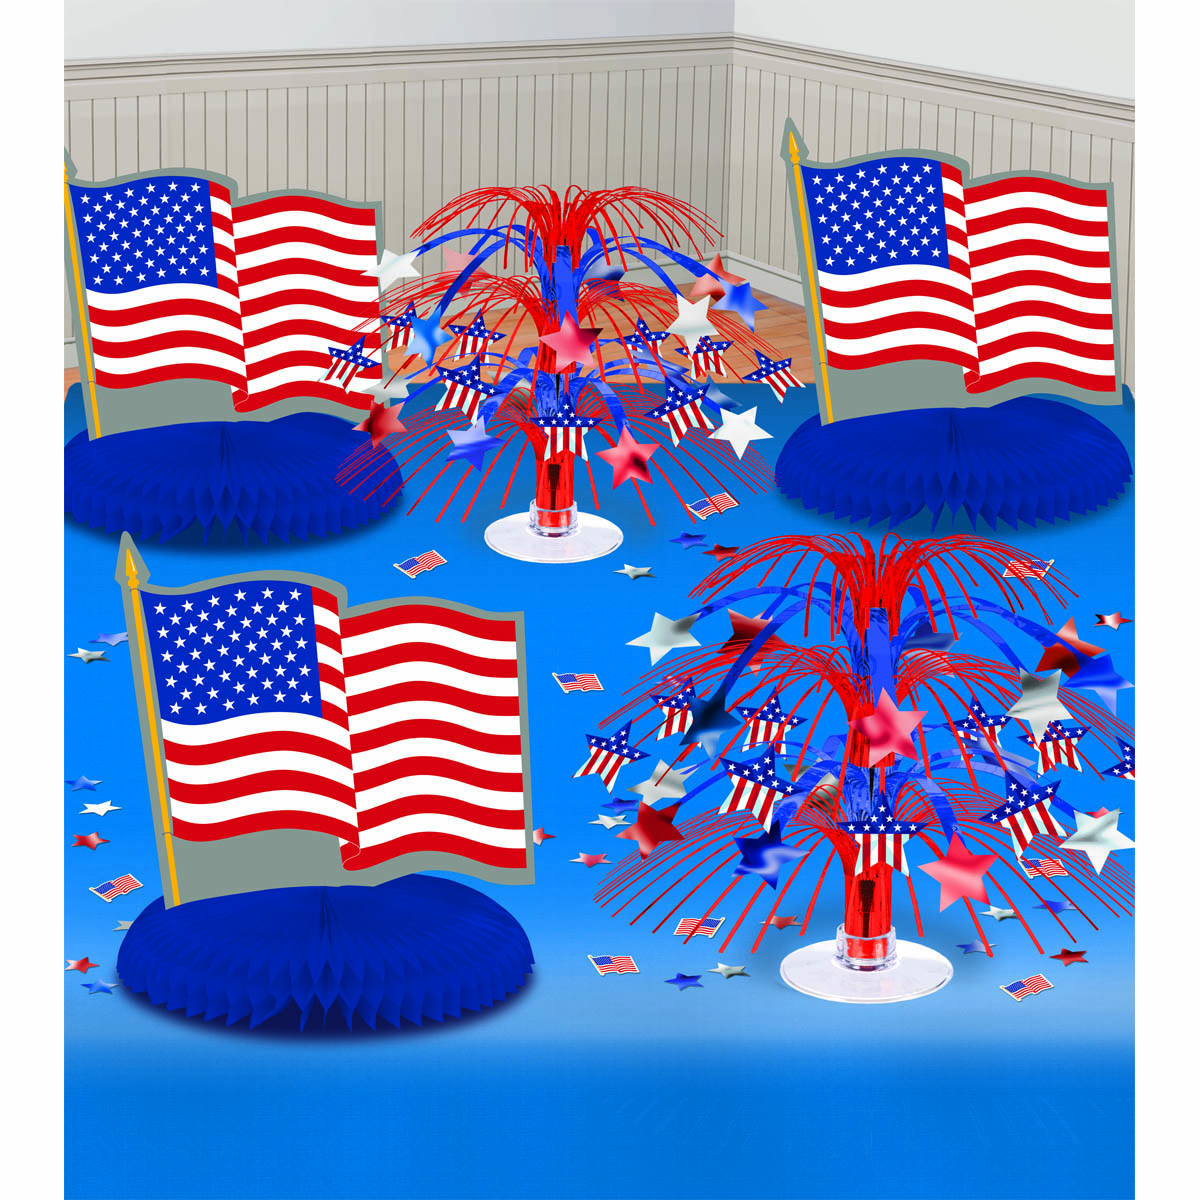 Patriotic Decorating Kits for the 4th of July – Flag Blog